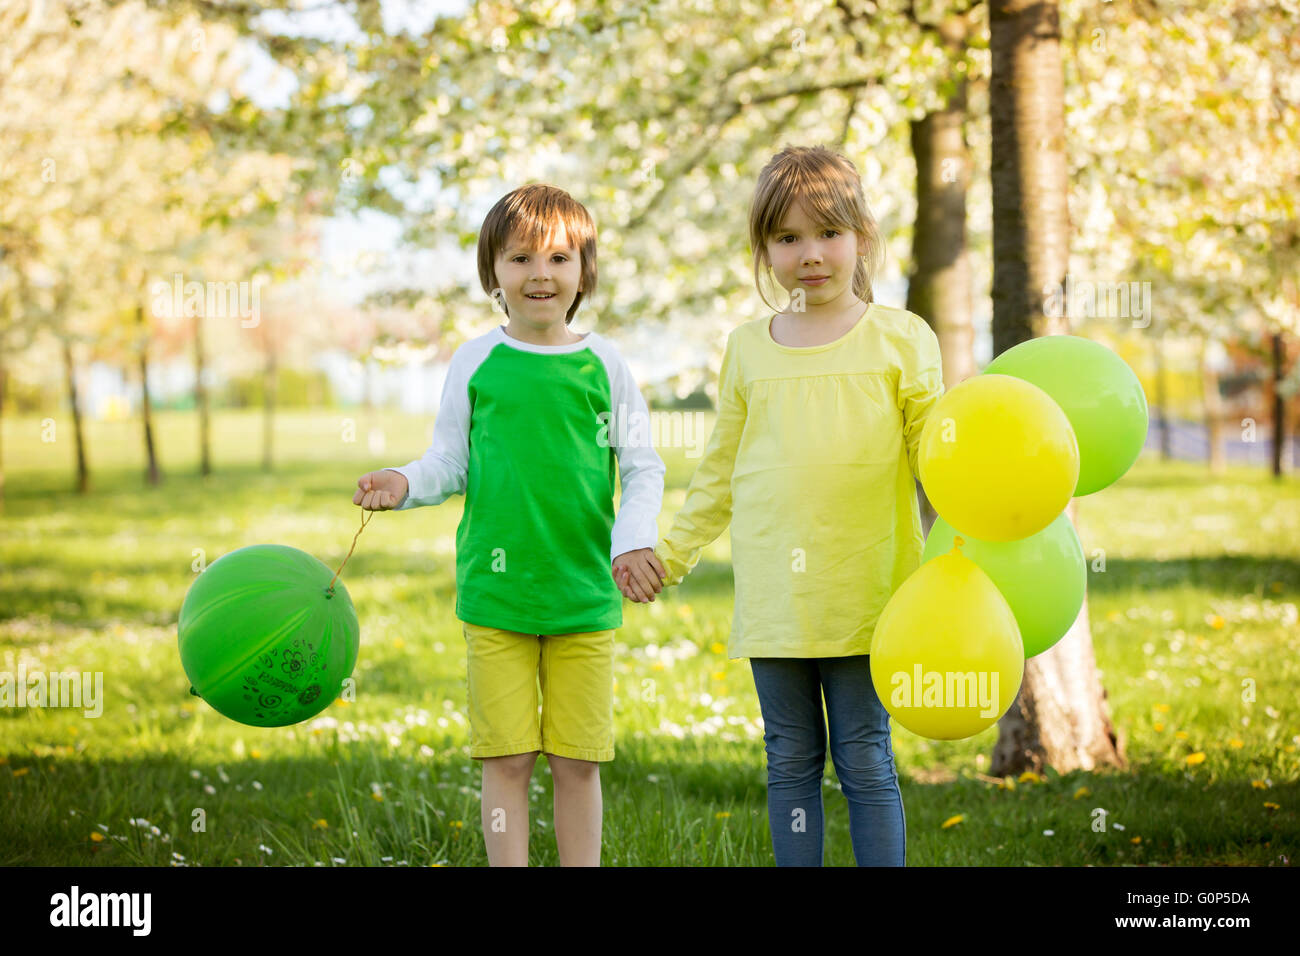 Cute little girl and boy, friends, playing with balloons in a blooming apple tree garden, spring sunny late afternoon - Stock Image